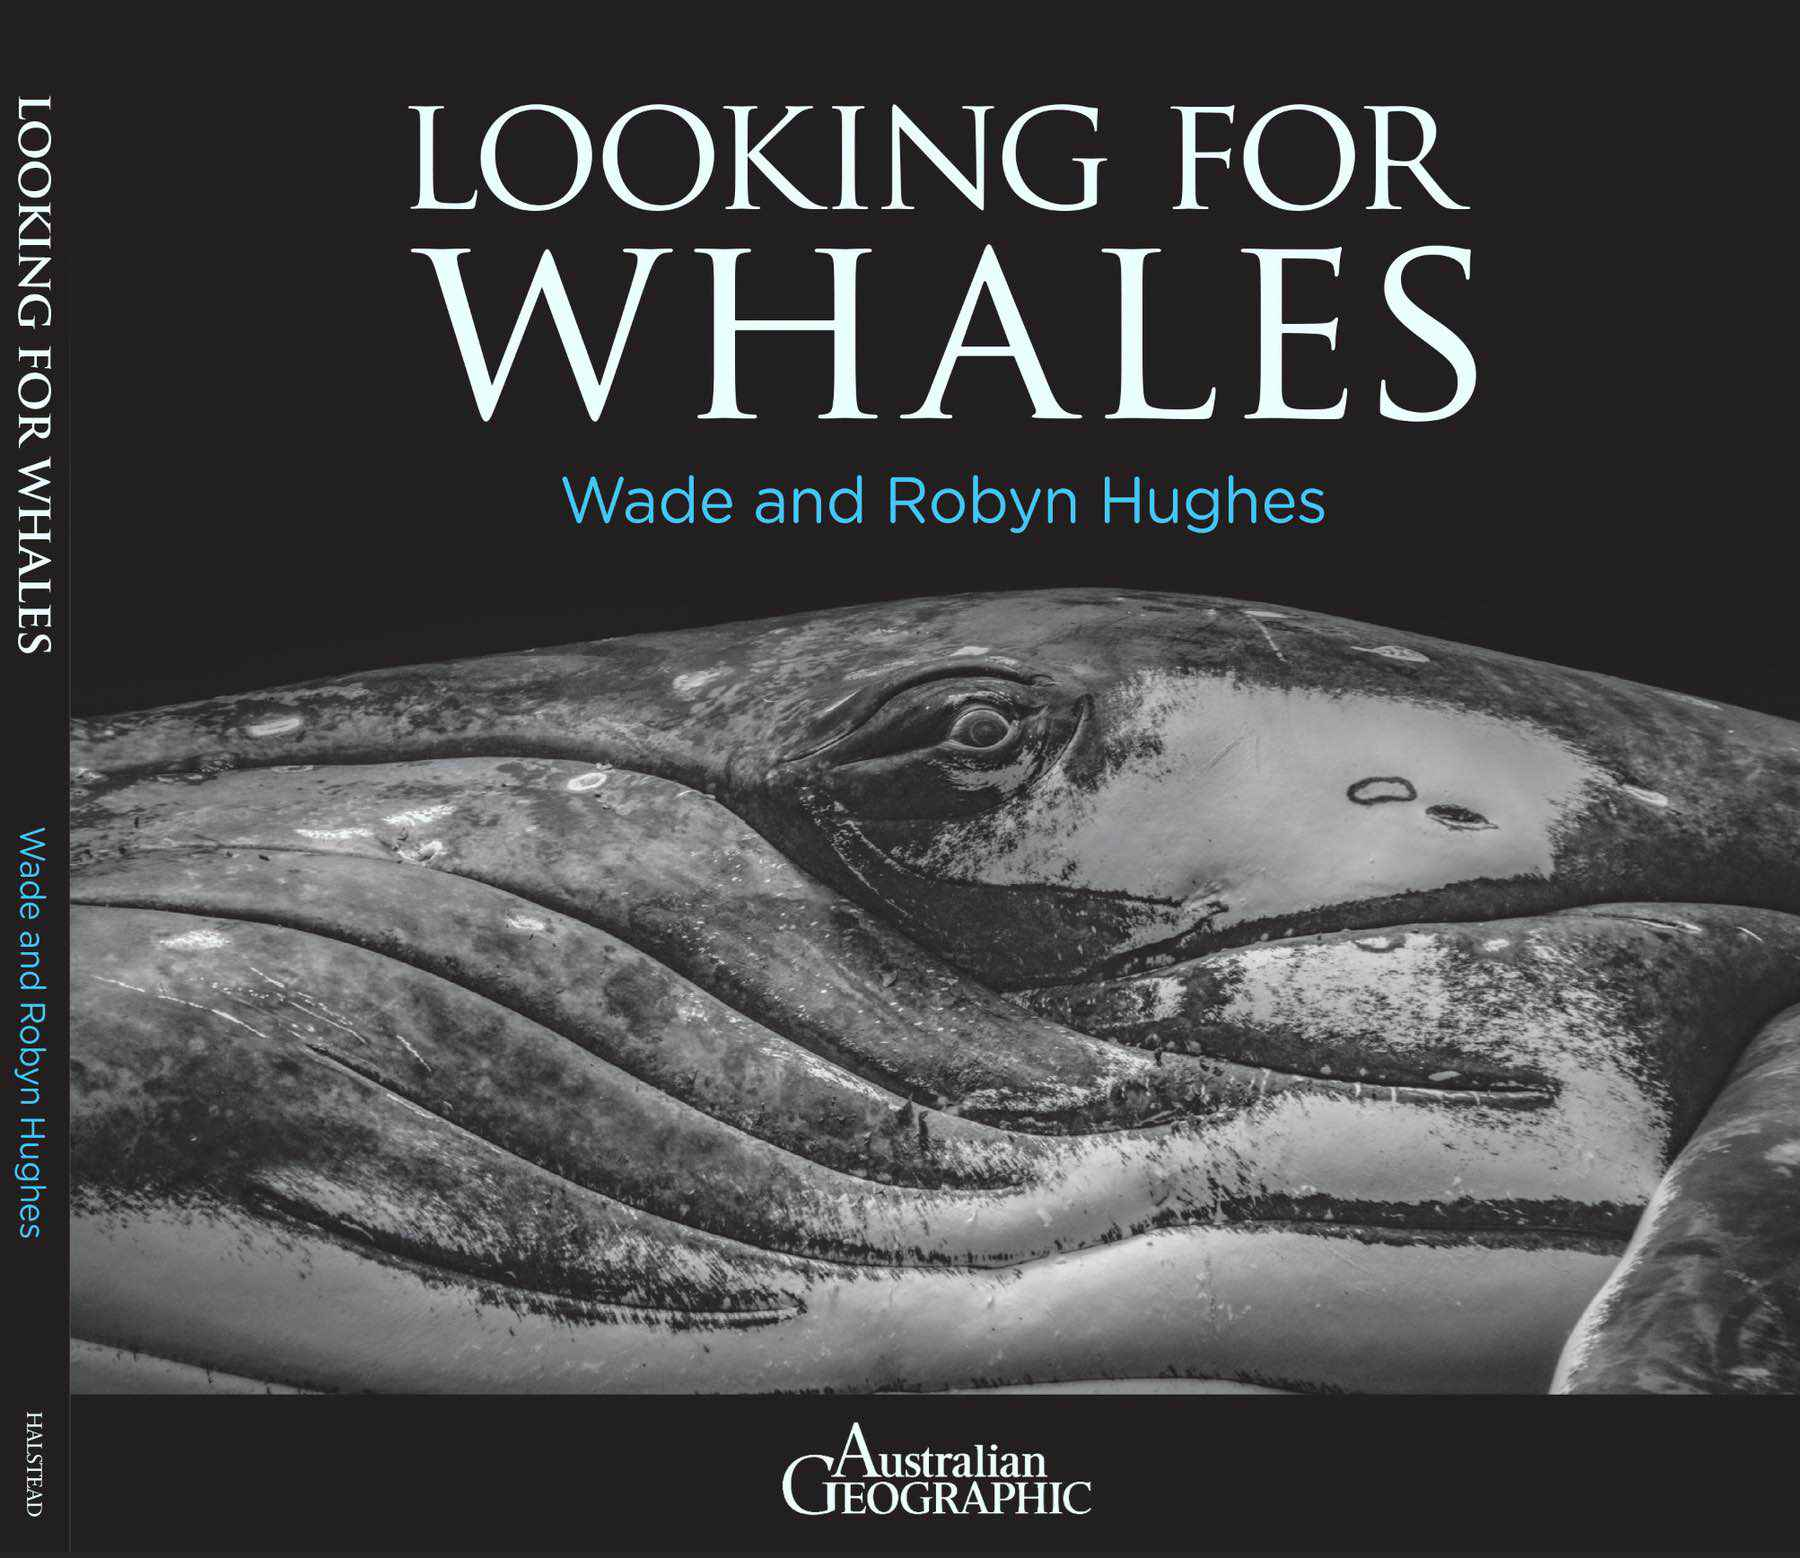 looking-for-whales-wade-robyn-hughes07